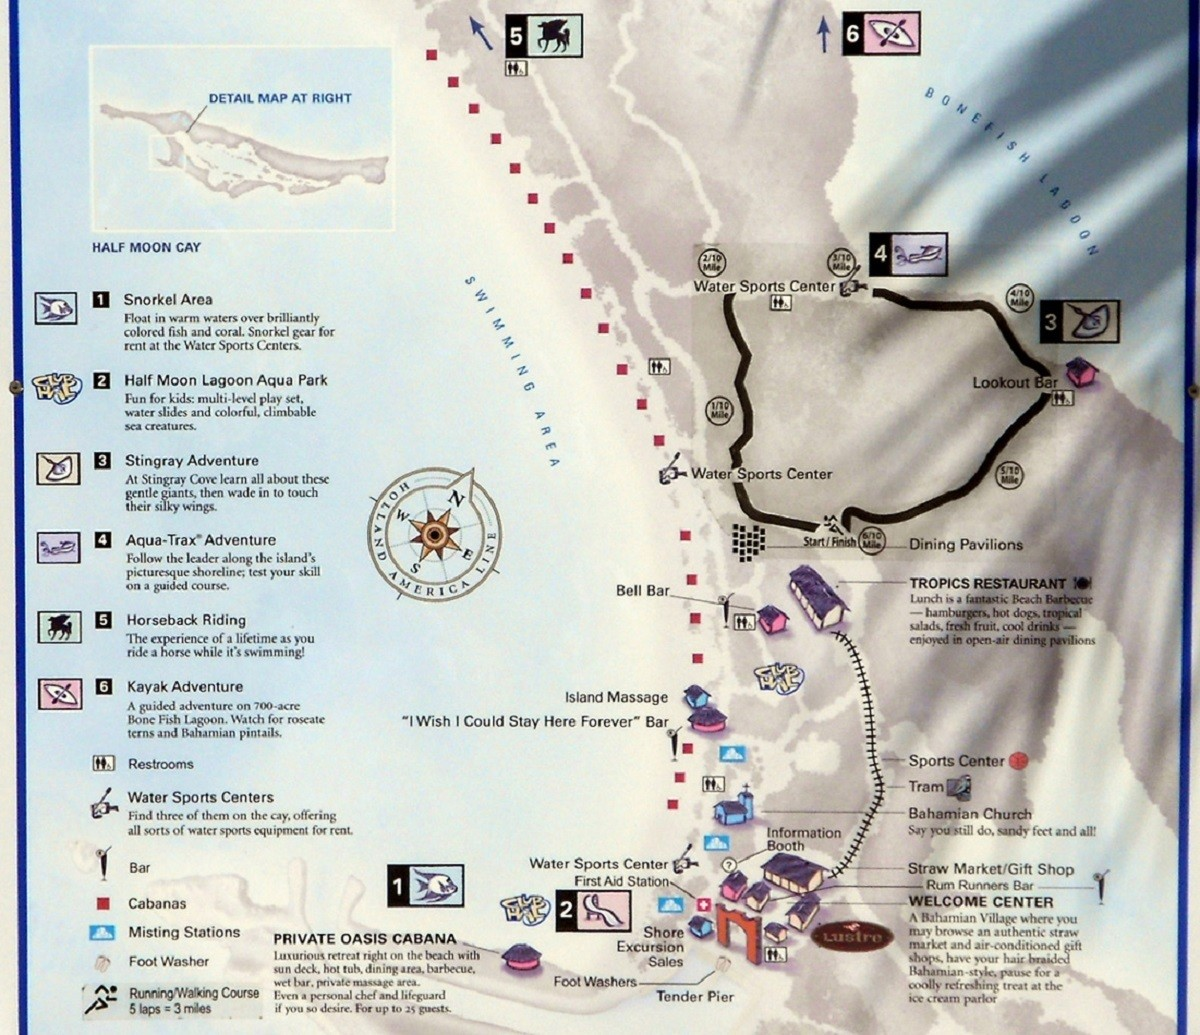 Detailed Half Moon Cay Map